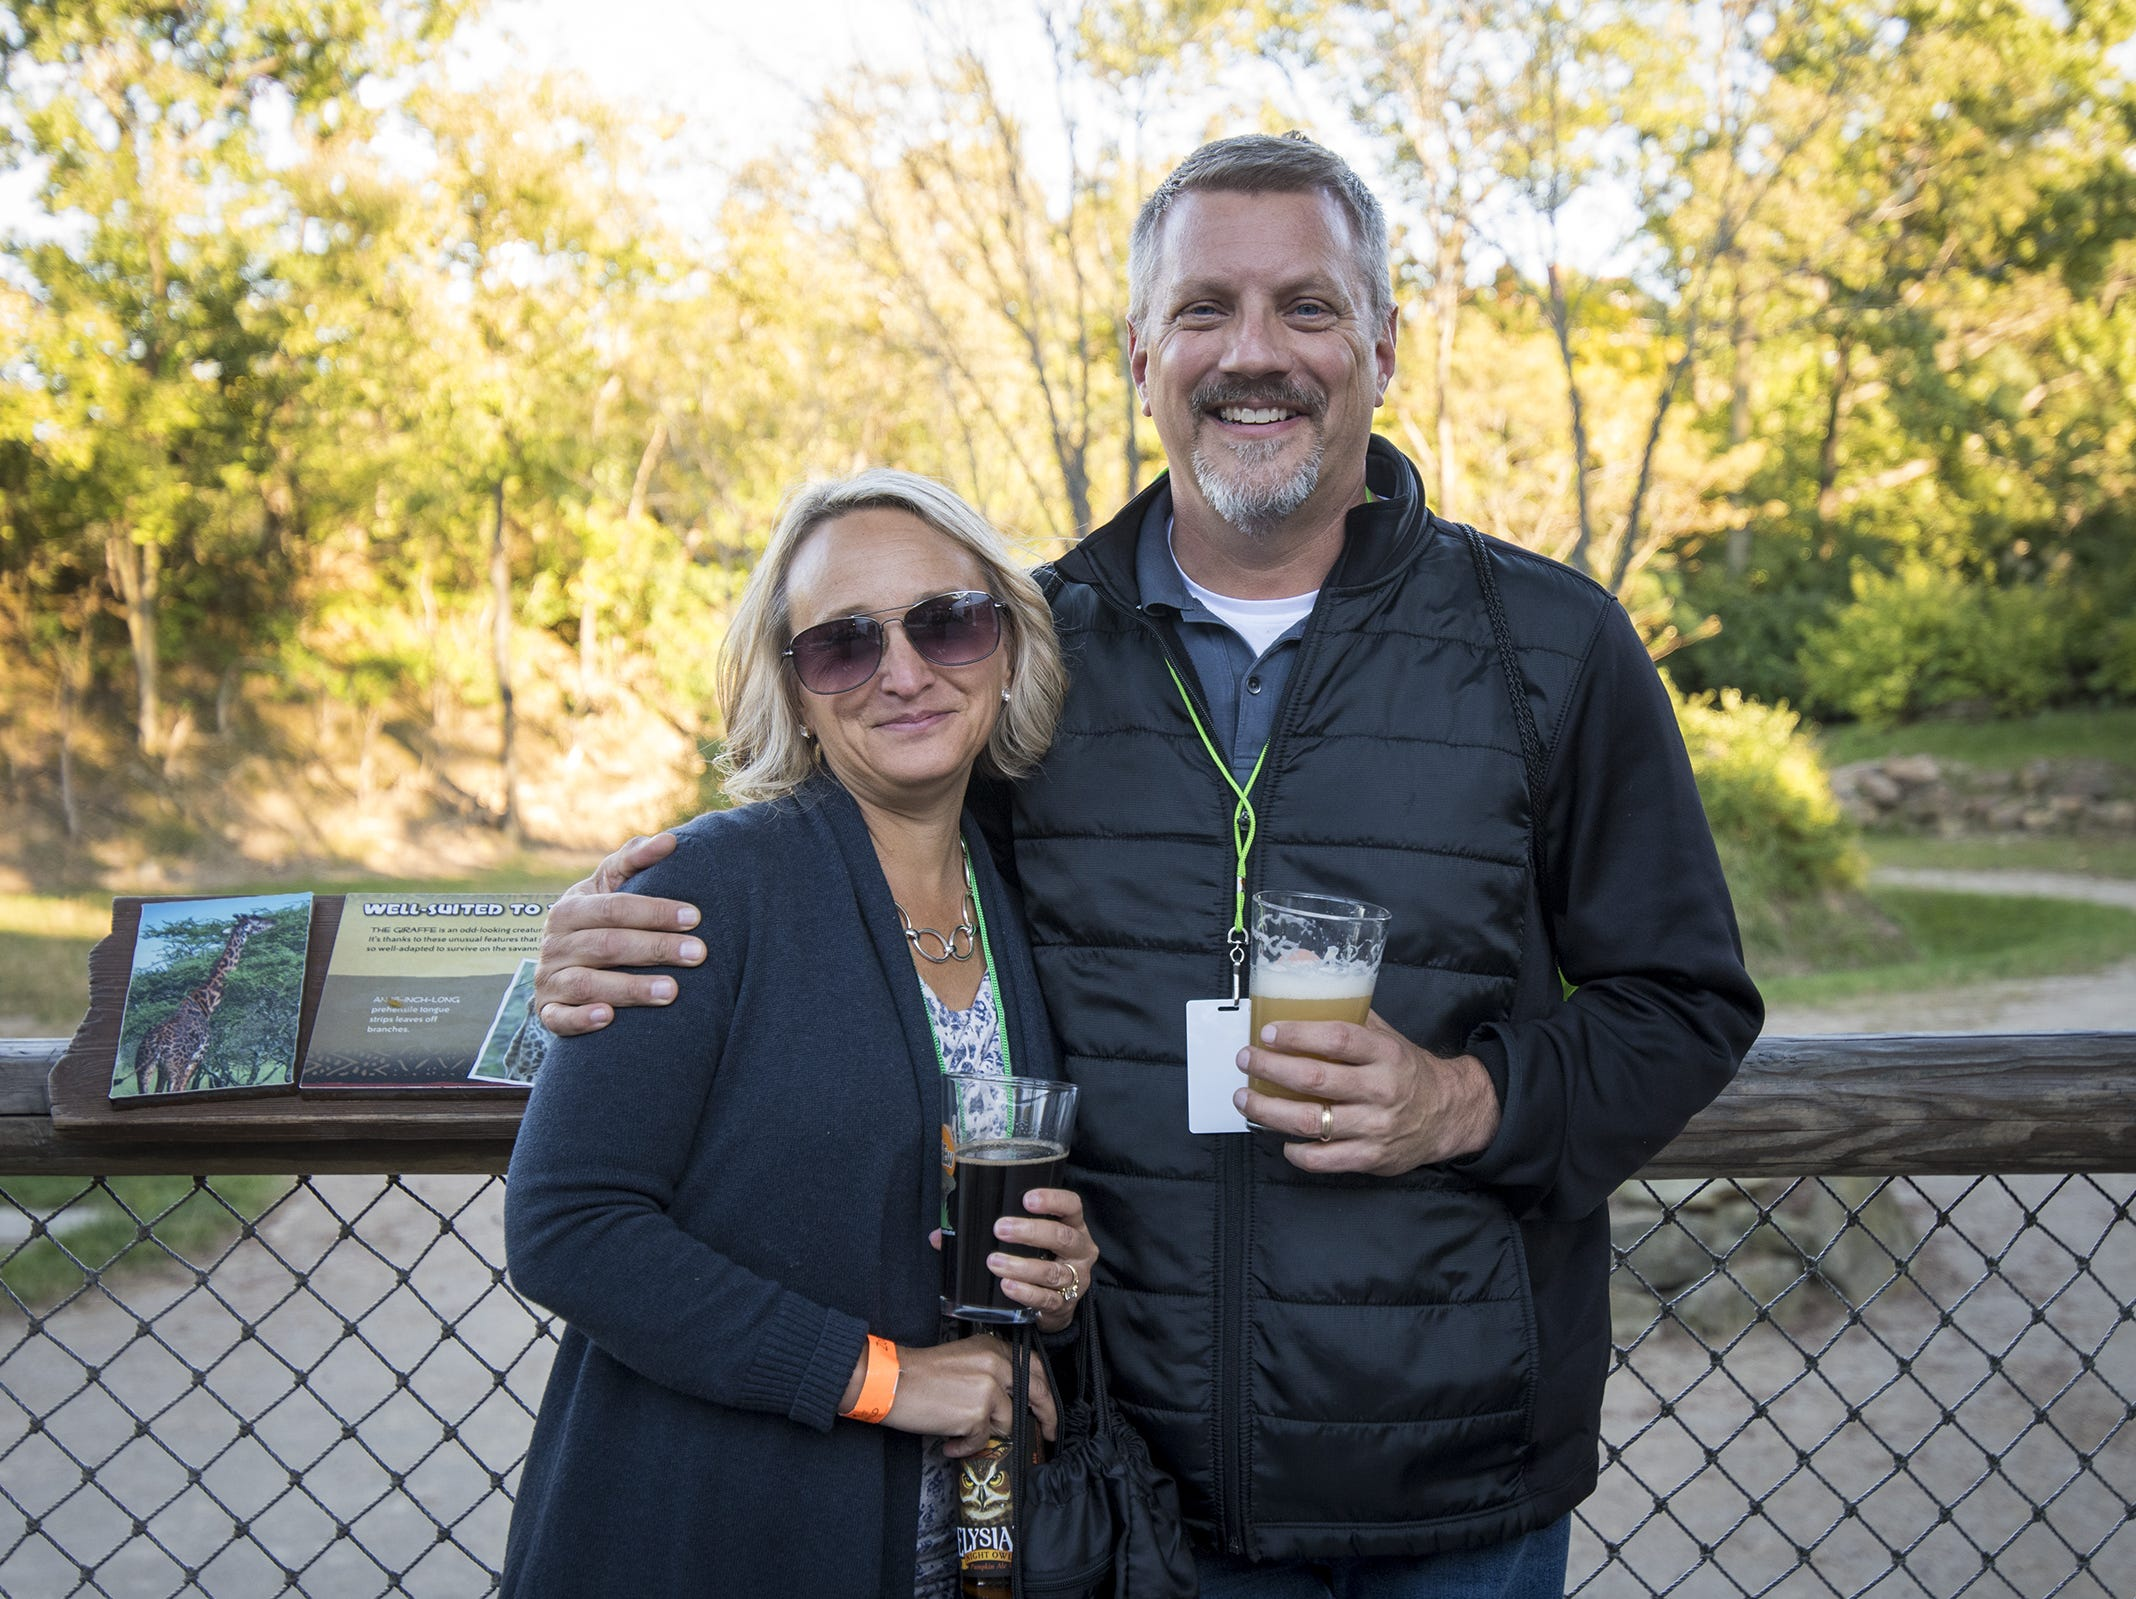 Kathy and Jim Schierer of Lakeside Park, Kentucky attend Zoo Brew.